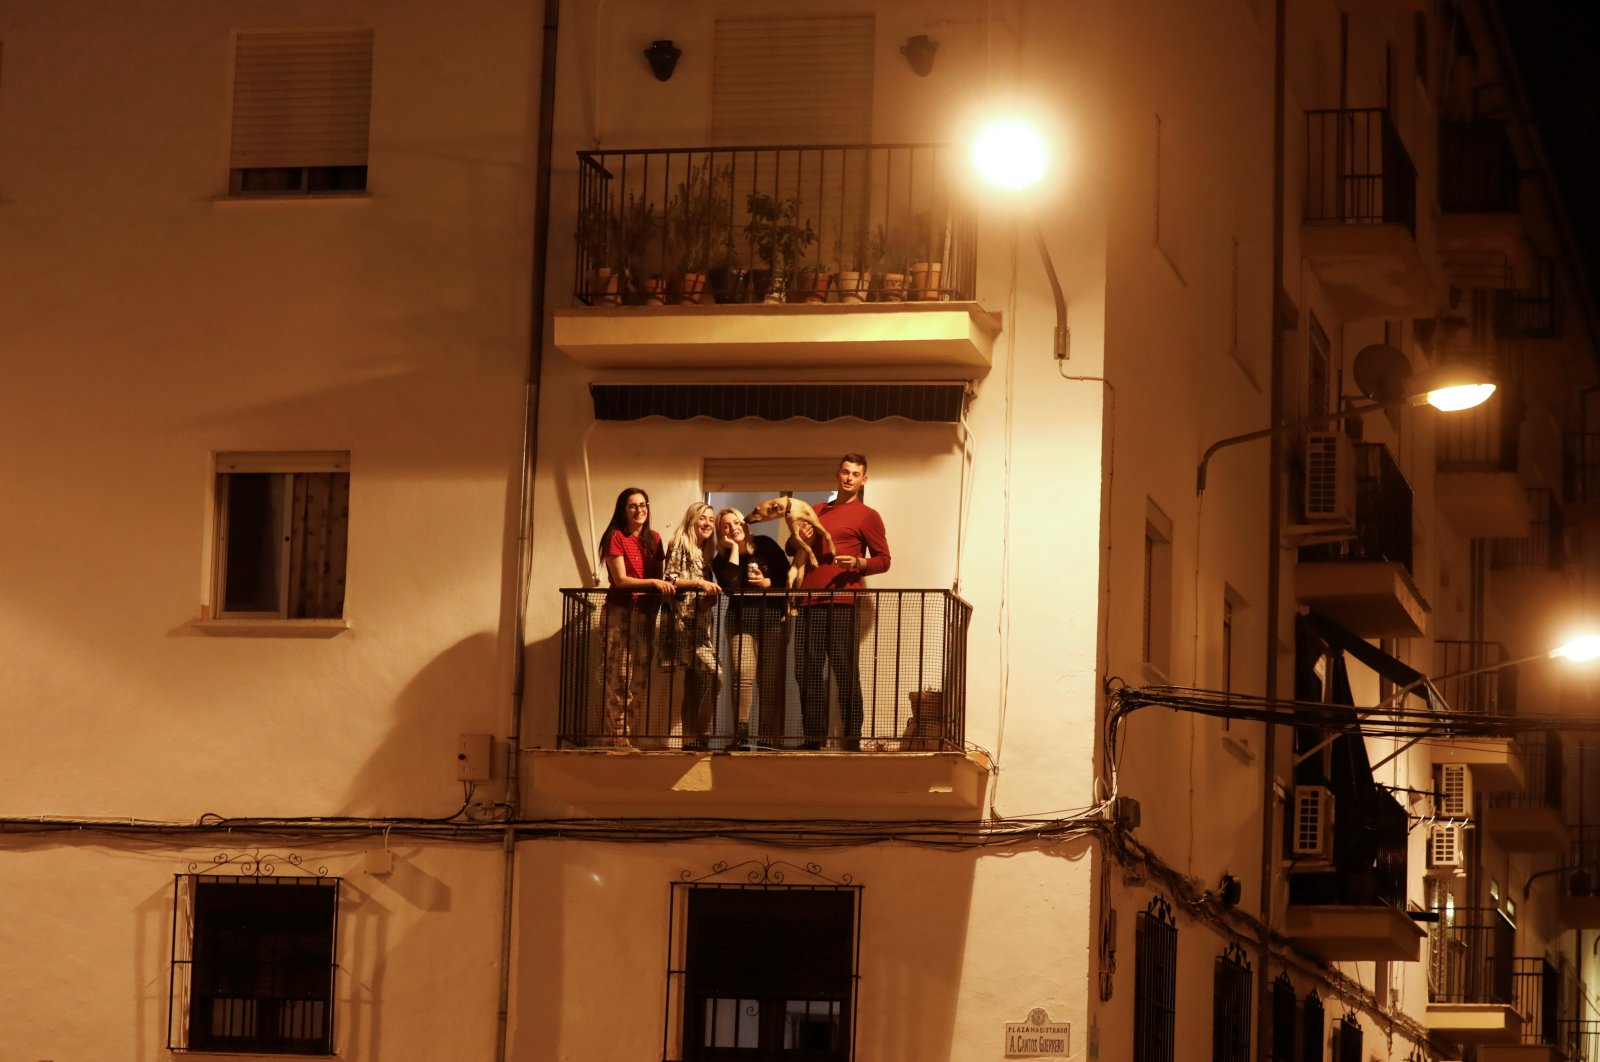 Youngers pose for a photo on a balcony of their shared flat as they remain confined inside it due to the coronavirus outbreak, in downtown Ronda, southern Spain March 14, 2020. (Reuters Photo)